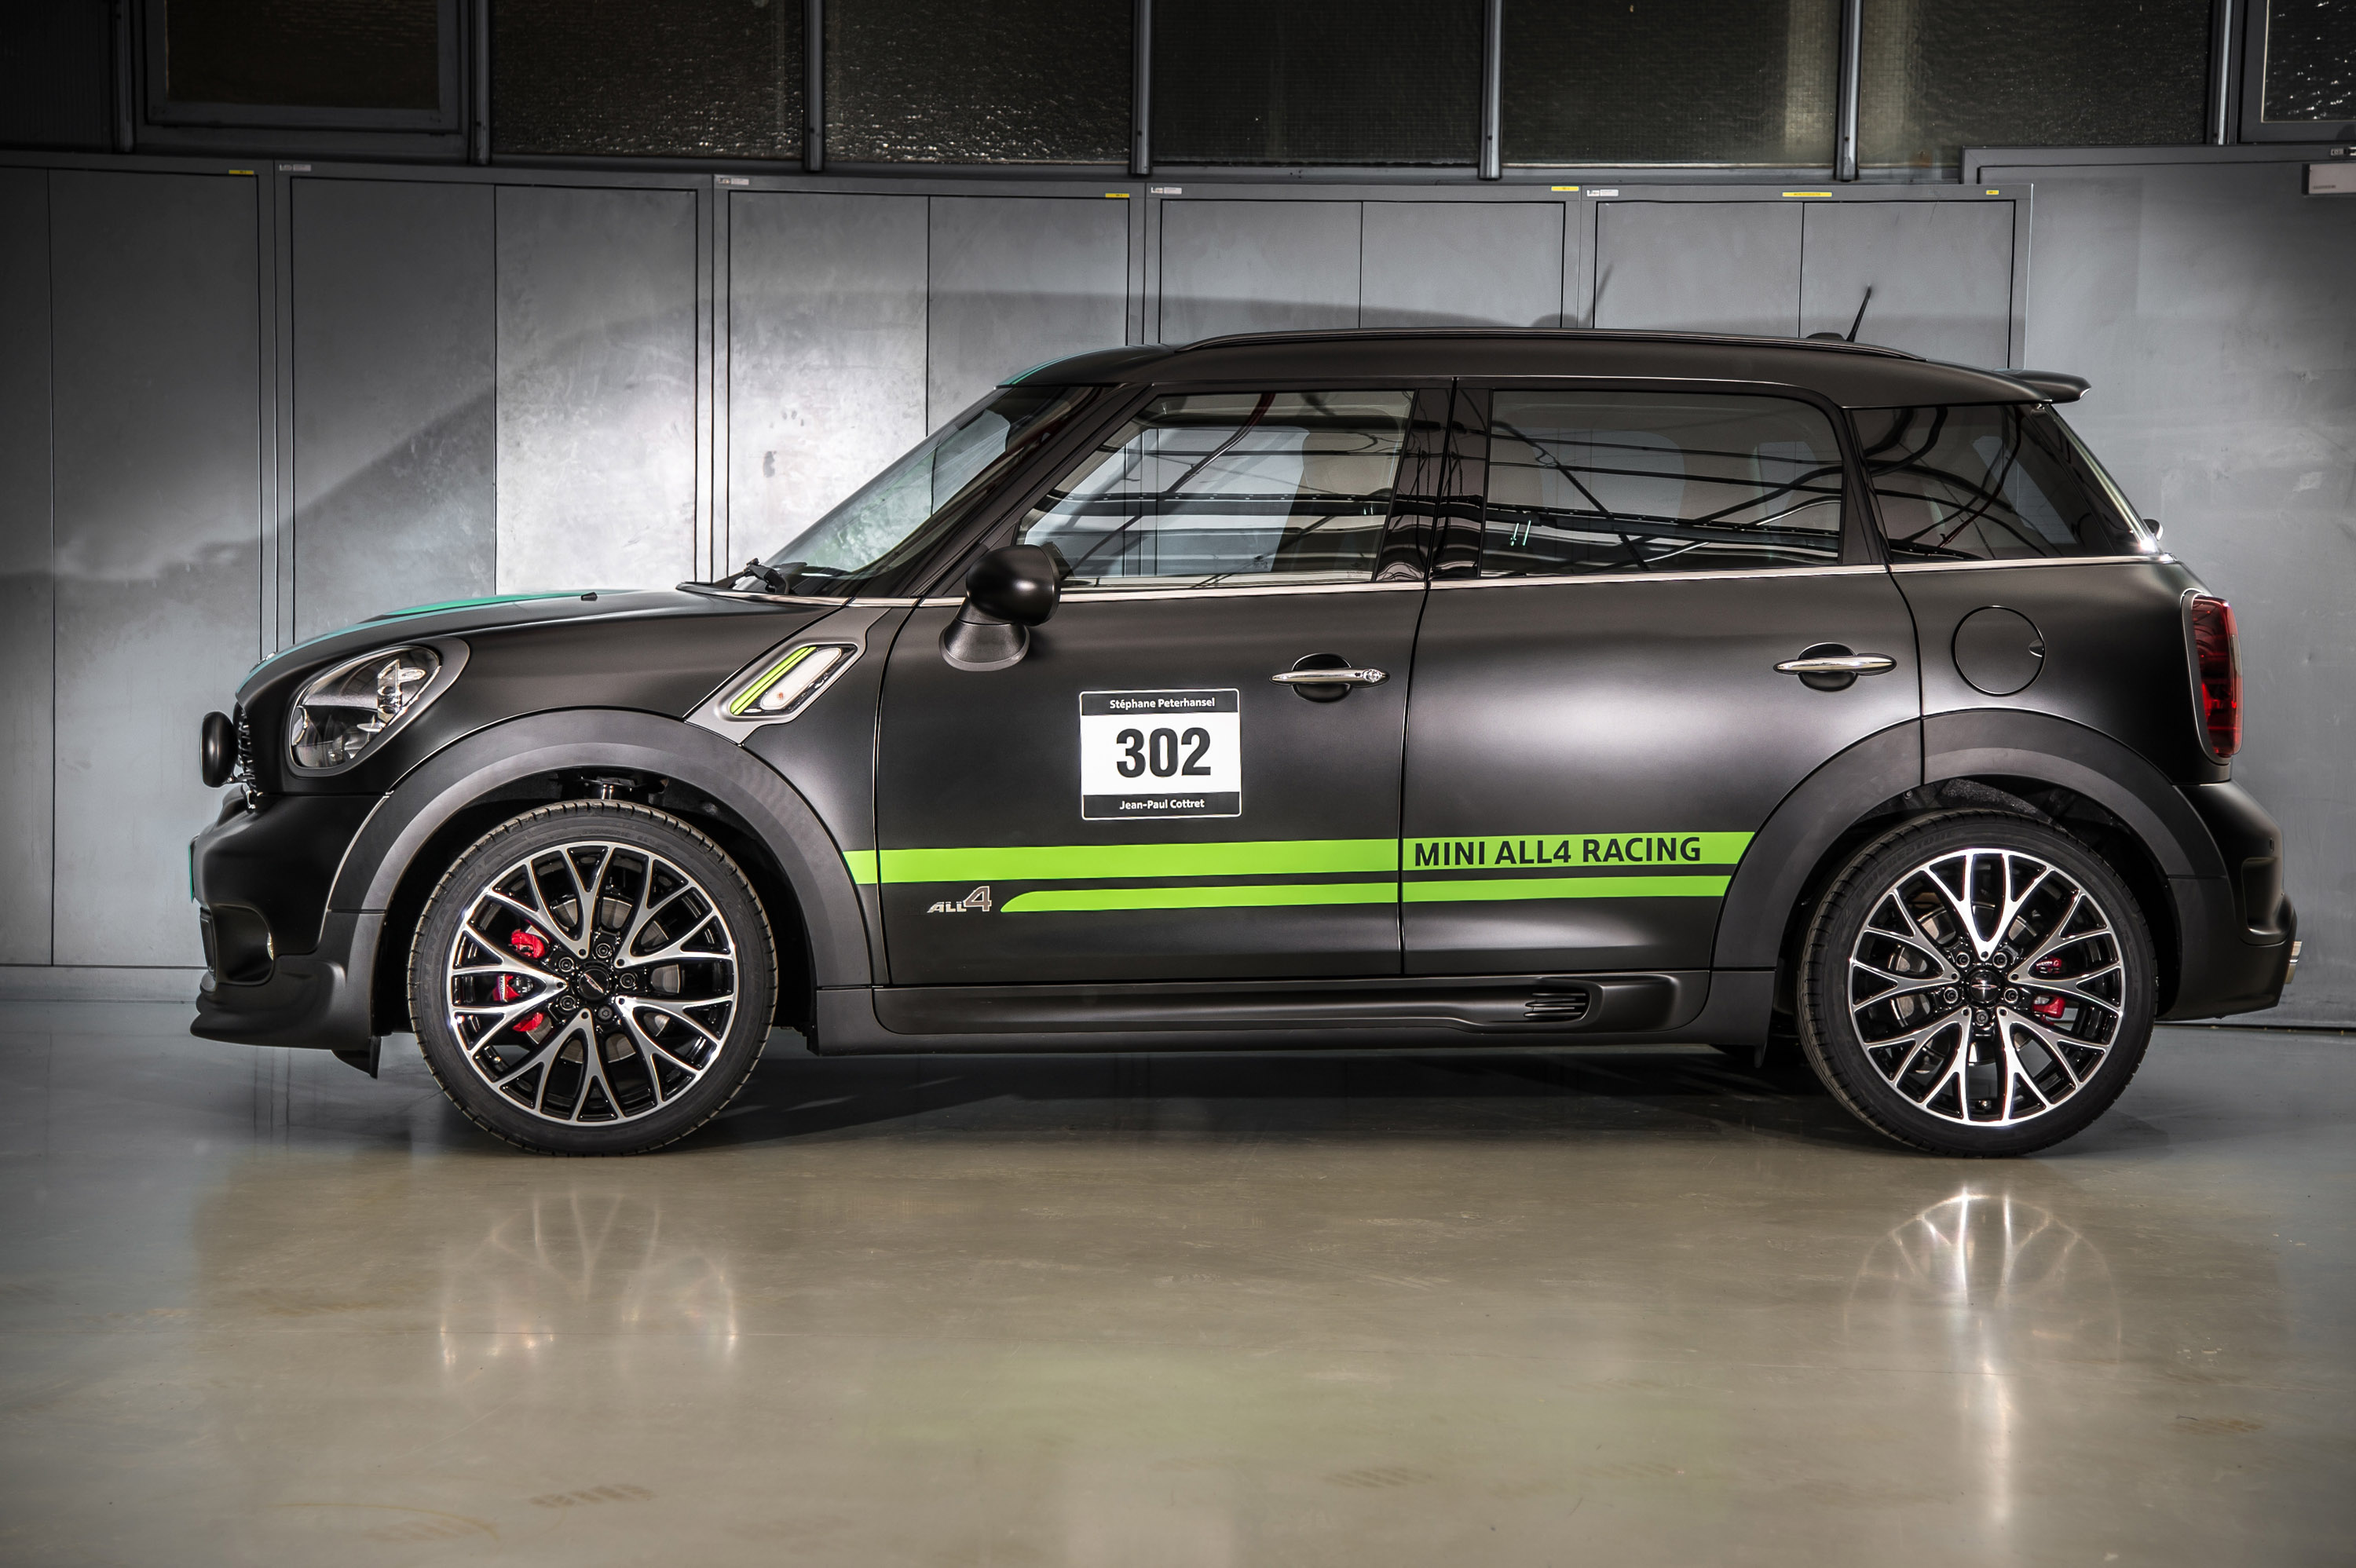 exclusive 2013 mini john cooper works countryman all4 dakar. Black Bedroom Furniture Sets. Home Design Ideas